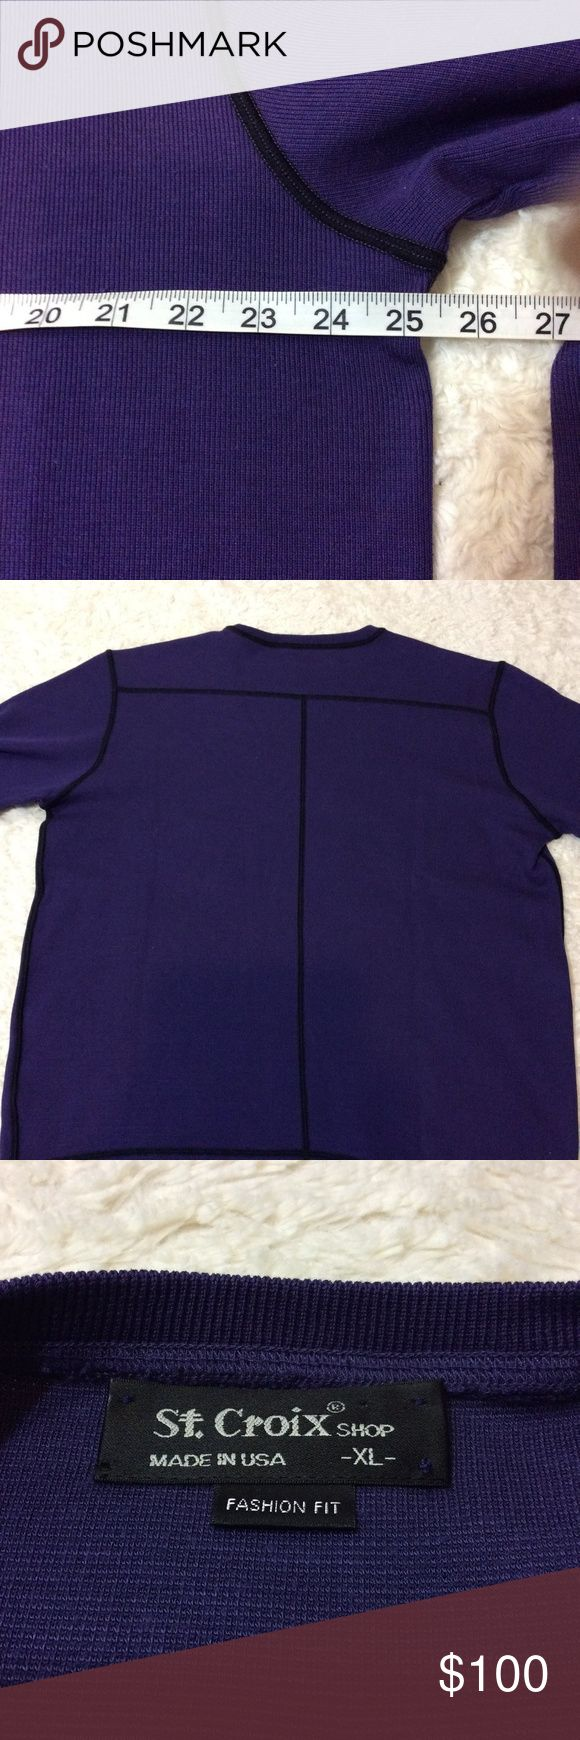 St. Croix open bottom cotton pullover New without tags. Size extra large. Chest measurement in the photo. Color amethyst and black. XL. Men's luxury knitwear. Men's casual shirt double lock cotton blend knit made in America. 70% cotton and 30% microfiber. Machine washable. Fashion fit for a slightly trimmer look. Shirts